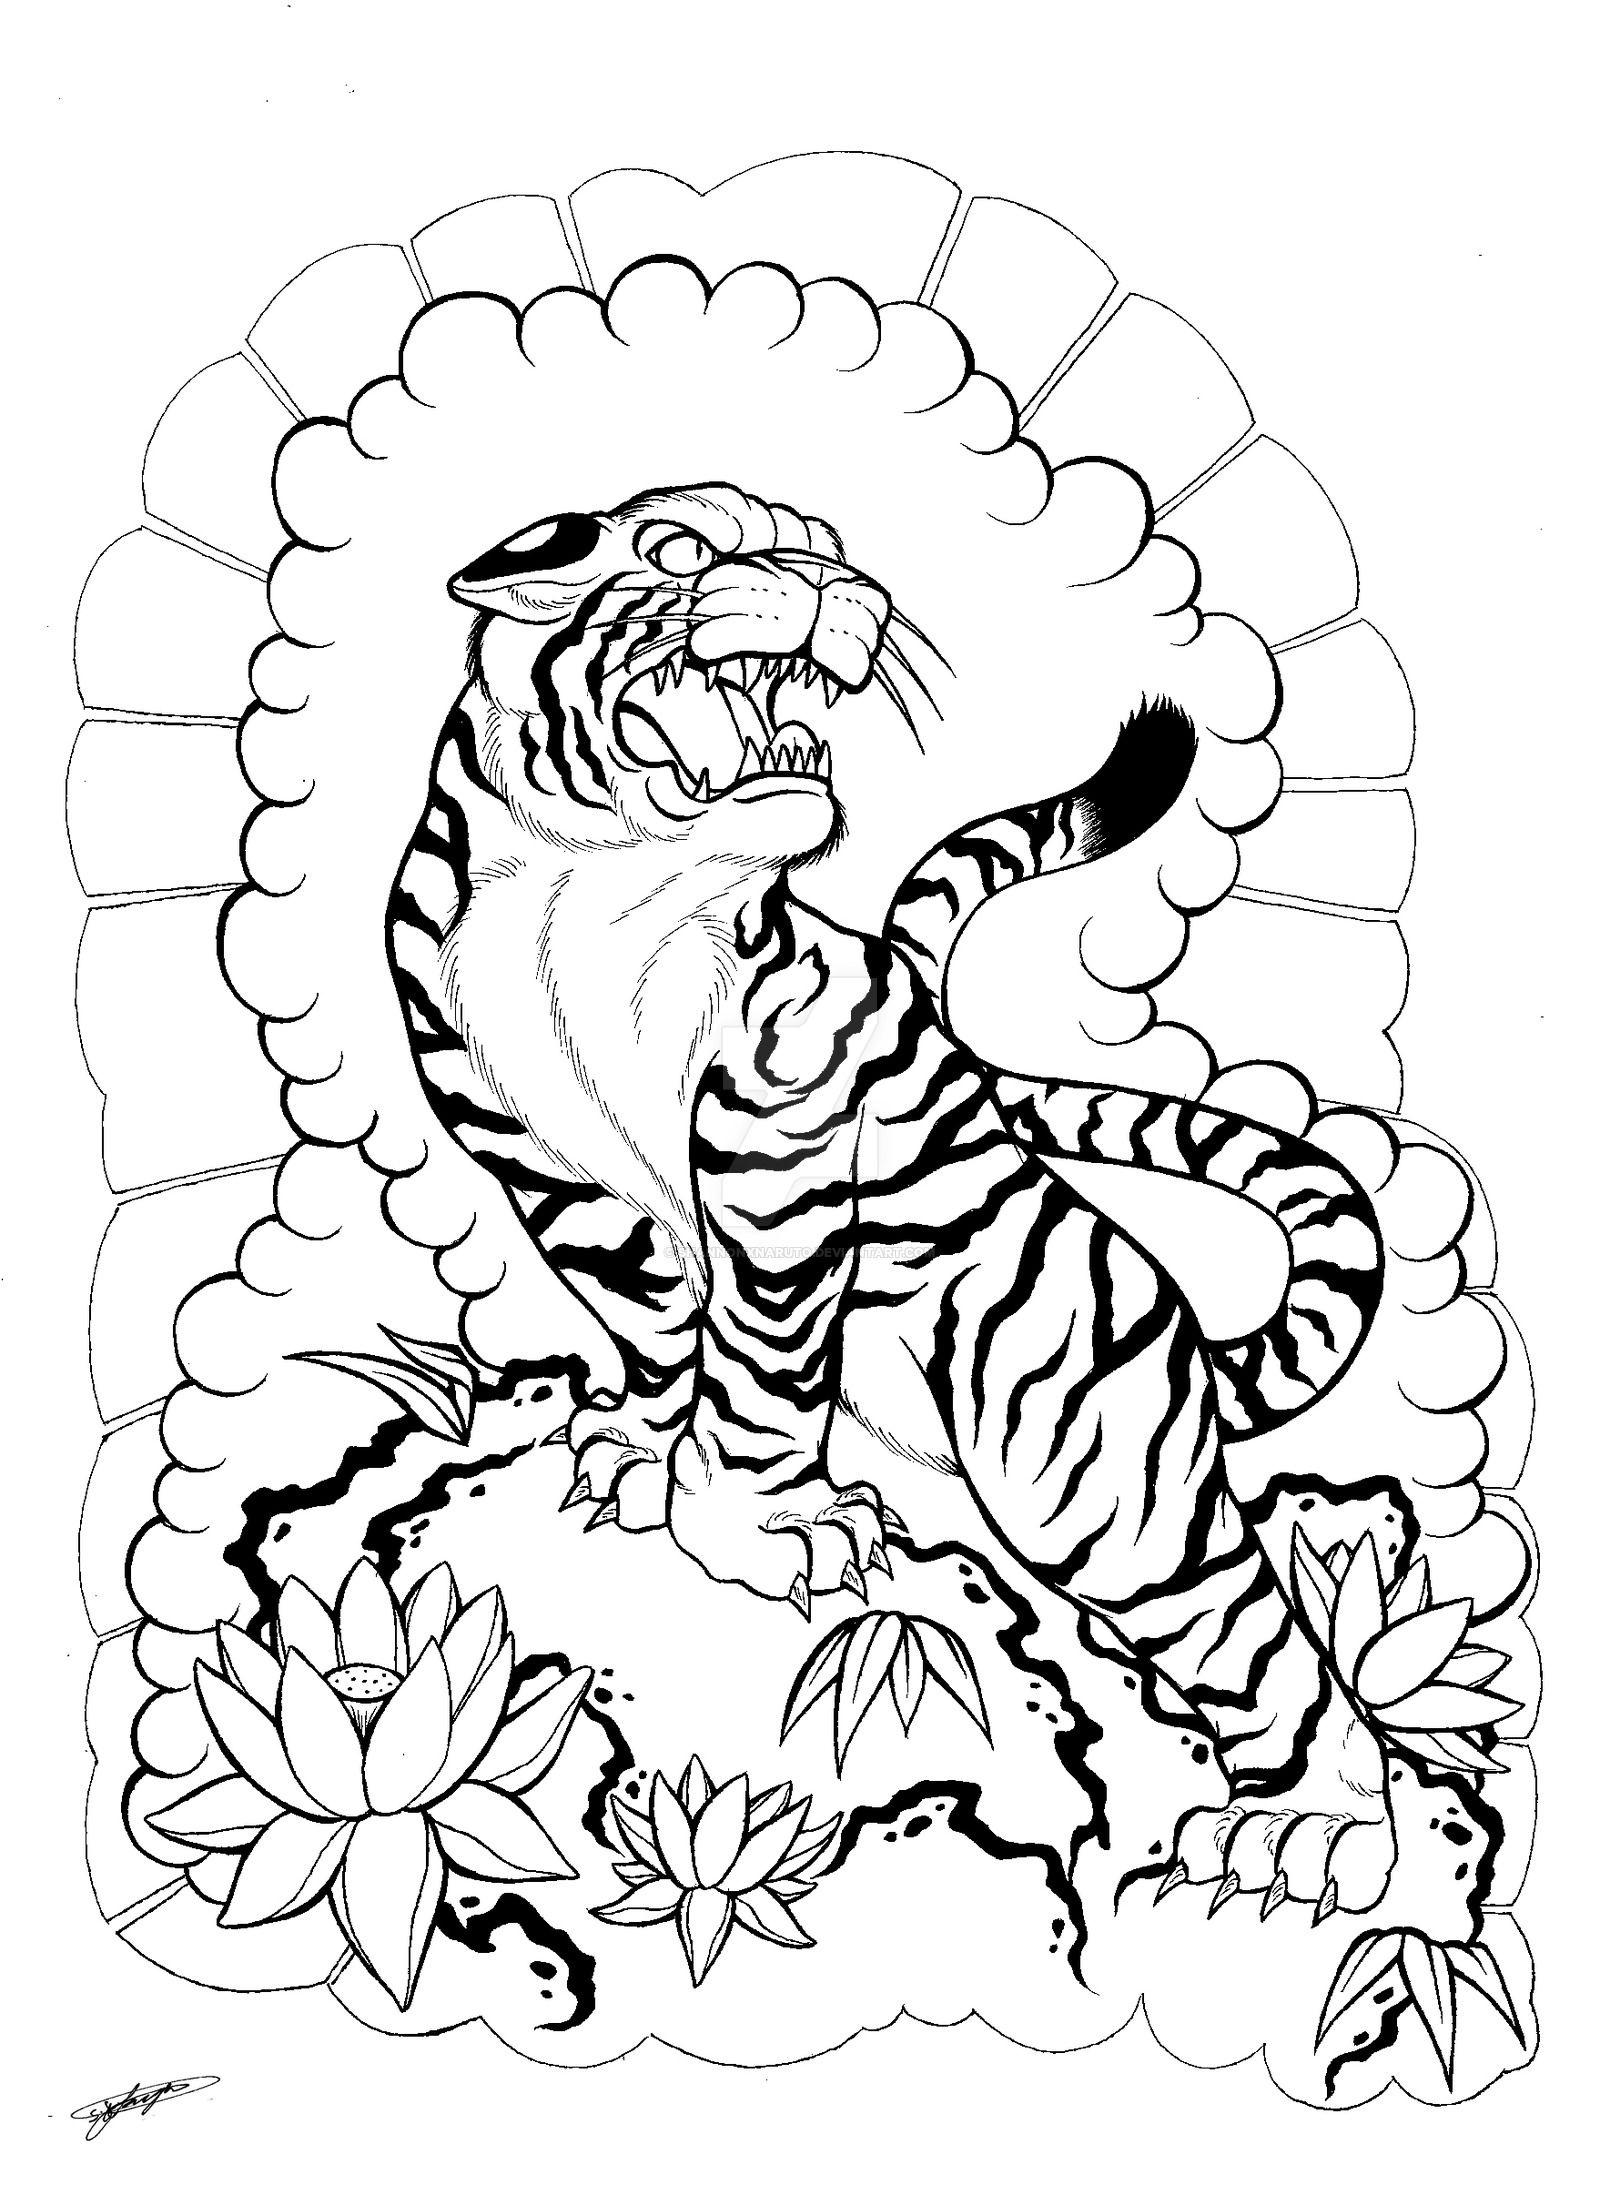 489b61827 My Japanese Tiger and Floral Tattoo Design! :3 by ShannonxNaruto ...